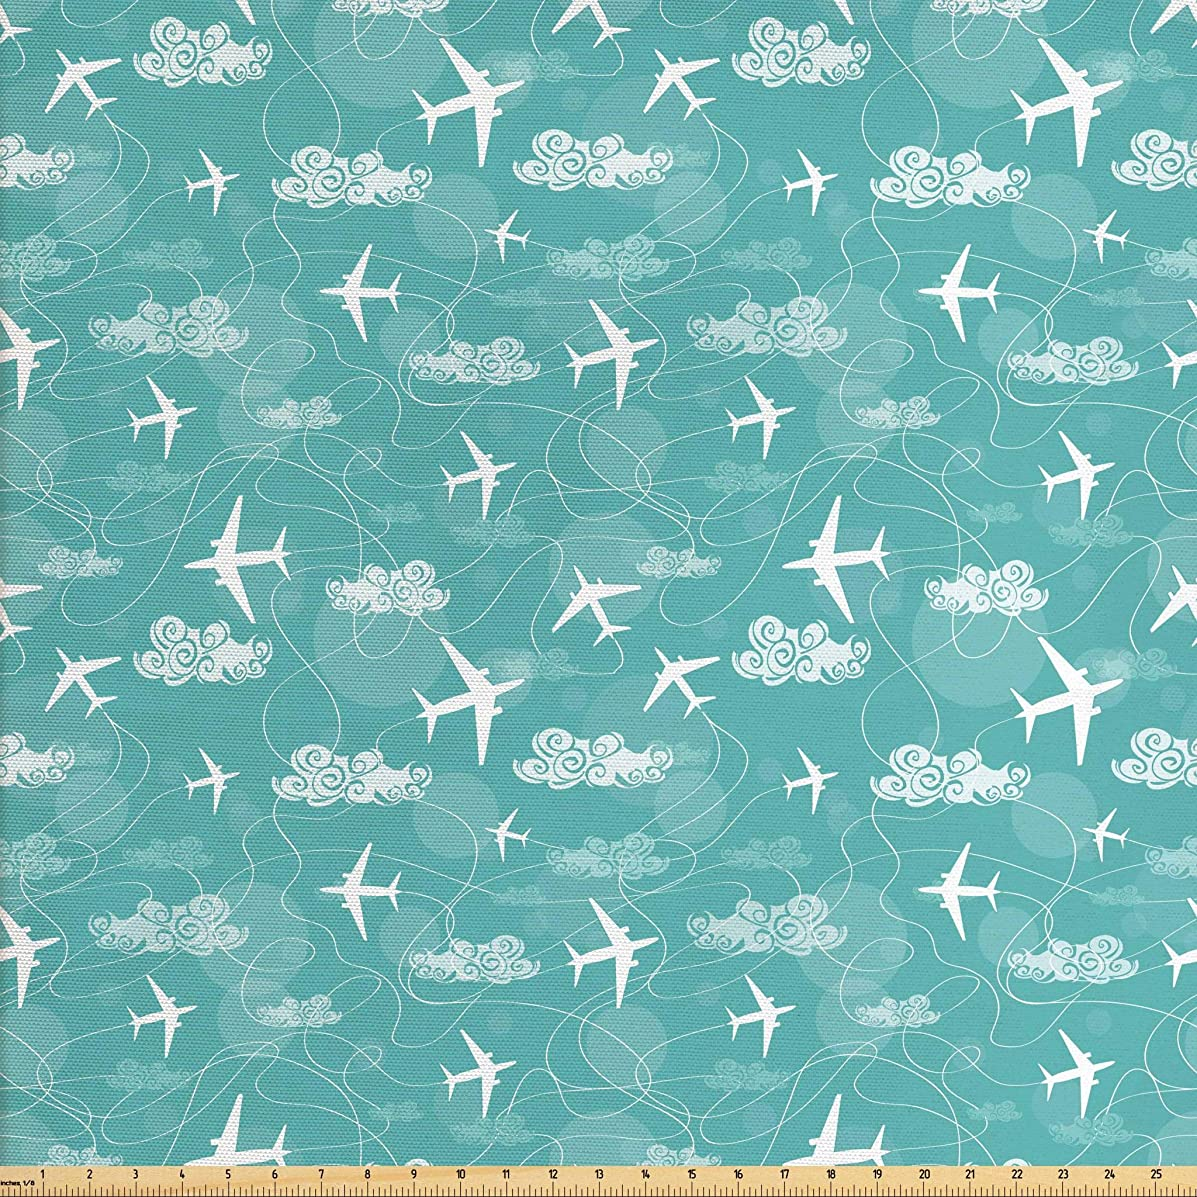 Ambesonne Airplane Fabric The Yard, Disoriented Flying Jets in Clear Sky Curly Clouds Travel Vacation Theme, Decorative Fabric Upholstery Home Accents, 2 Yards, Turquoise White